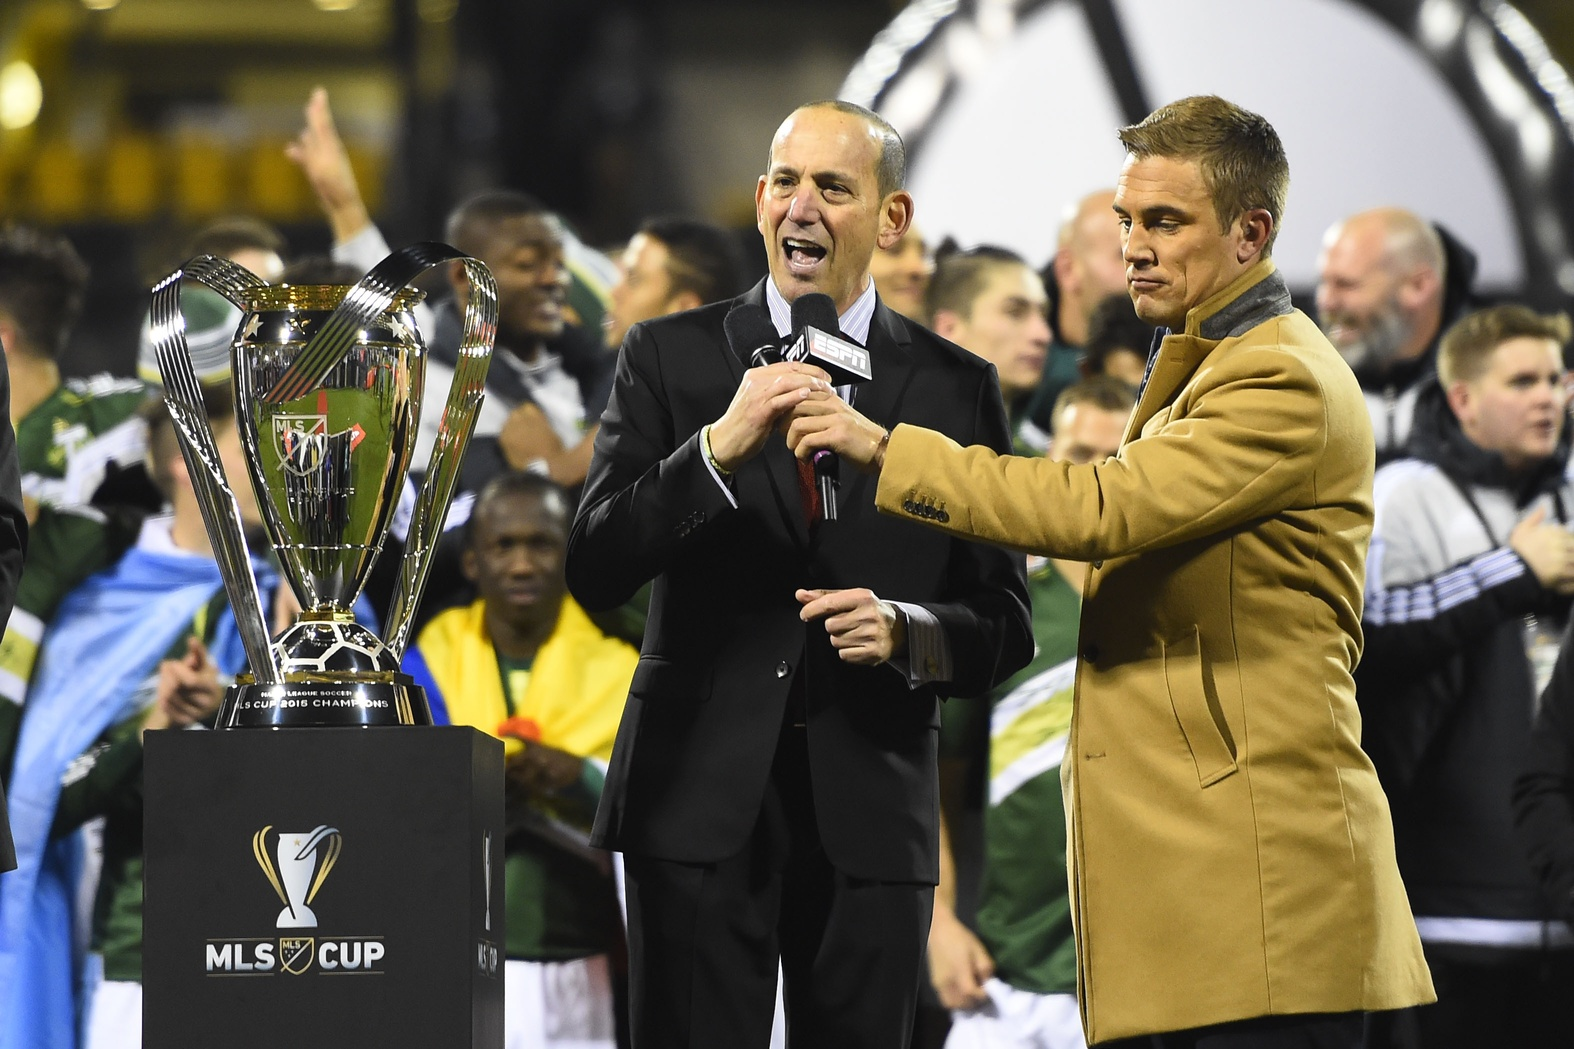 Mls Must Consider Shifting Its Schedule So Mls Cup Doesn T